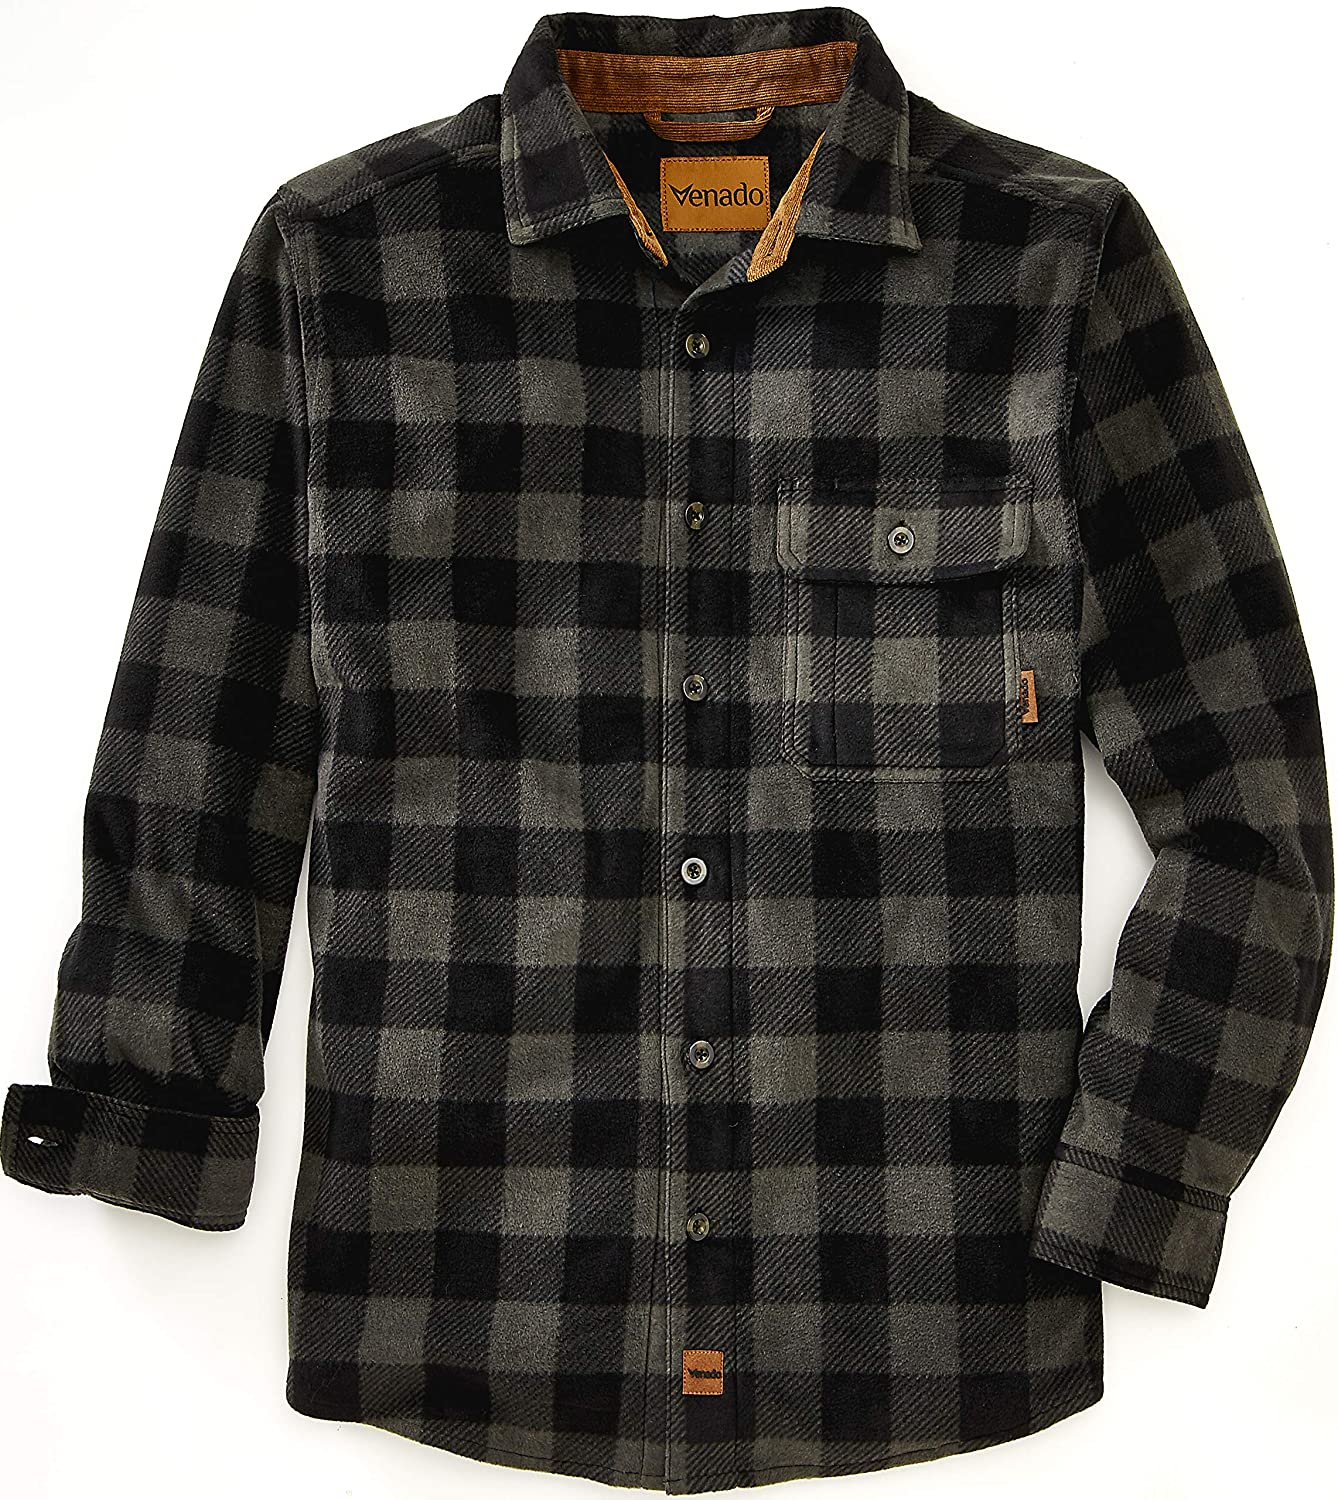 Venado Mens Plaid Shirts for Men - Heavyweight Buffalo Plaid Fleece Shirt at  Men's Clothing store